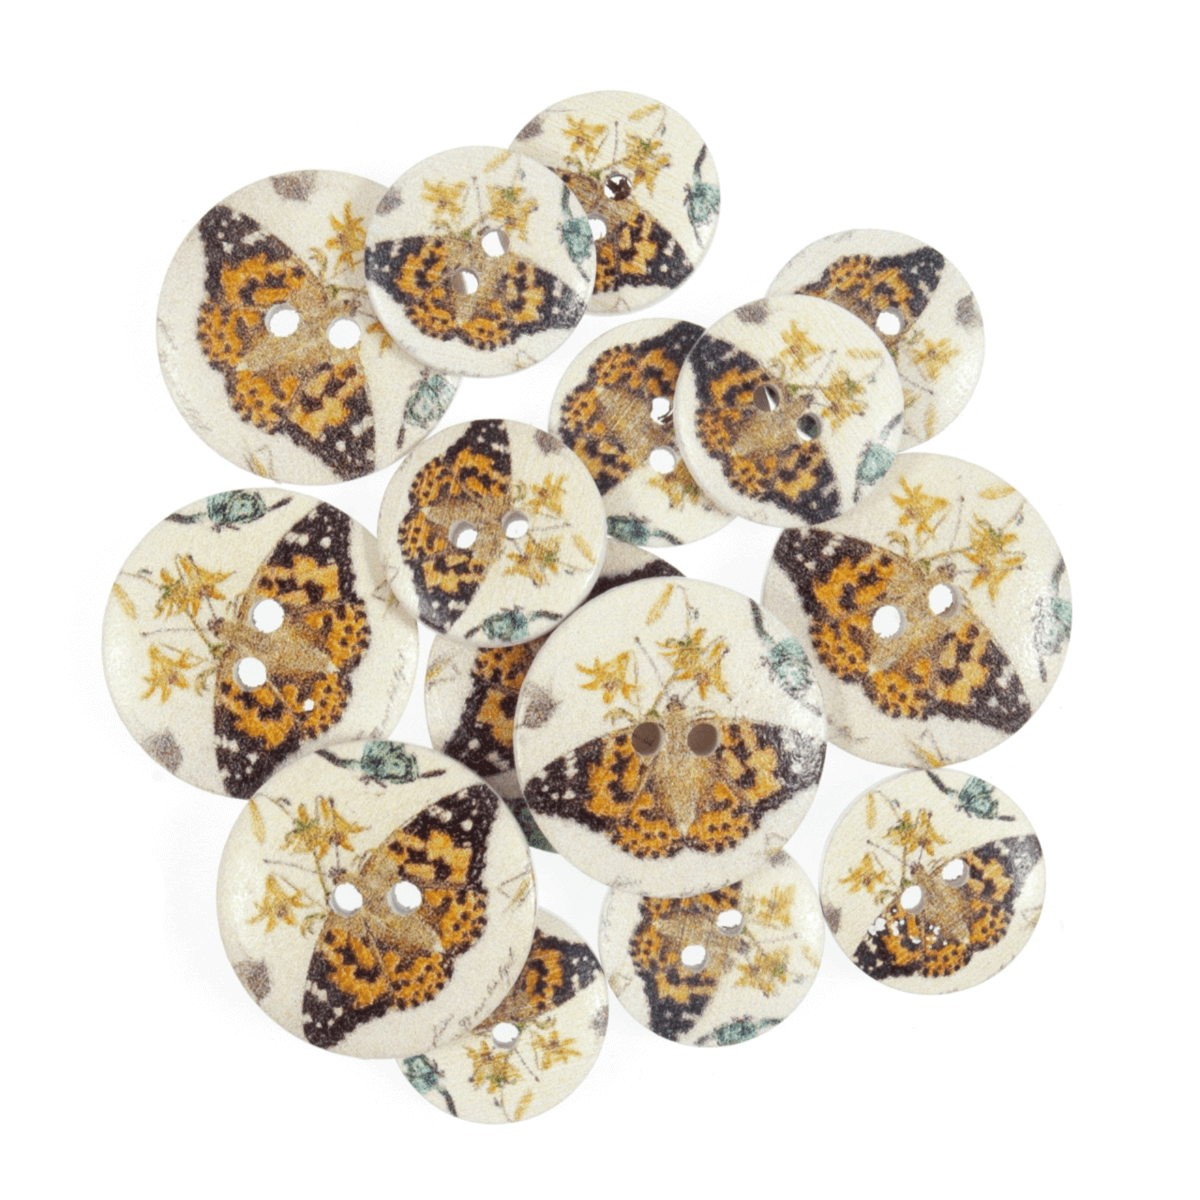 15 x Assorted Butterfly On Leaf Wooden Craft Buttons 18mm - 25mm